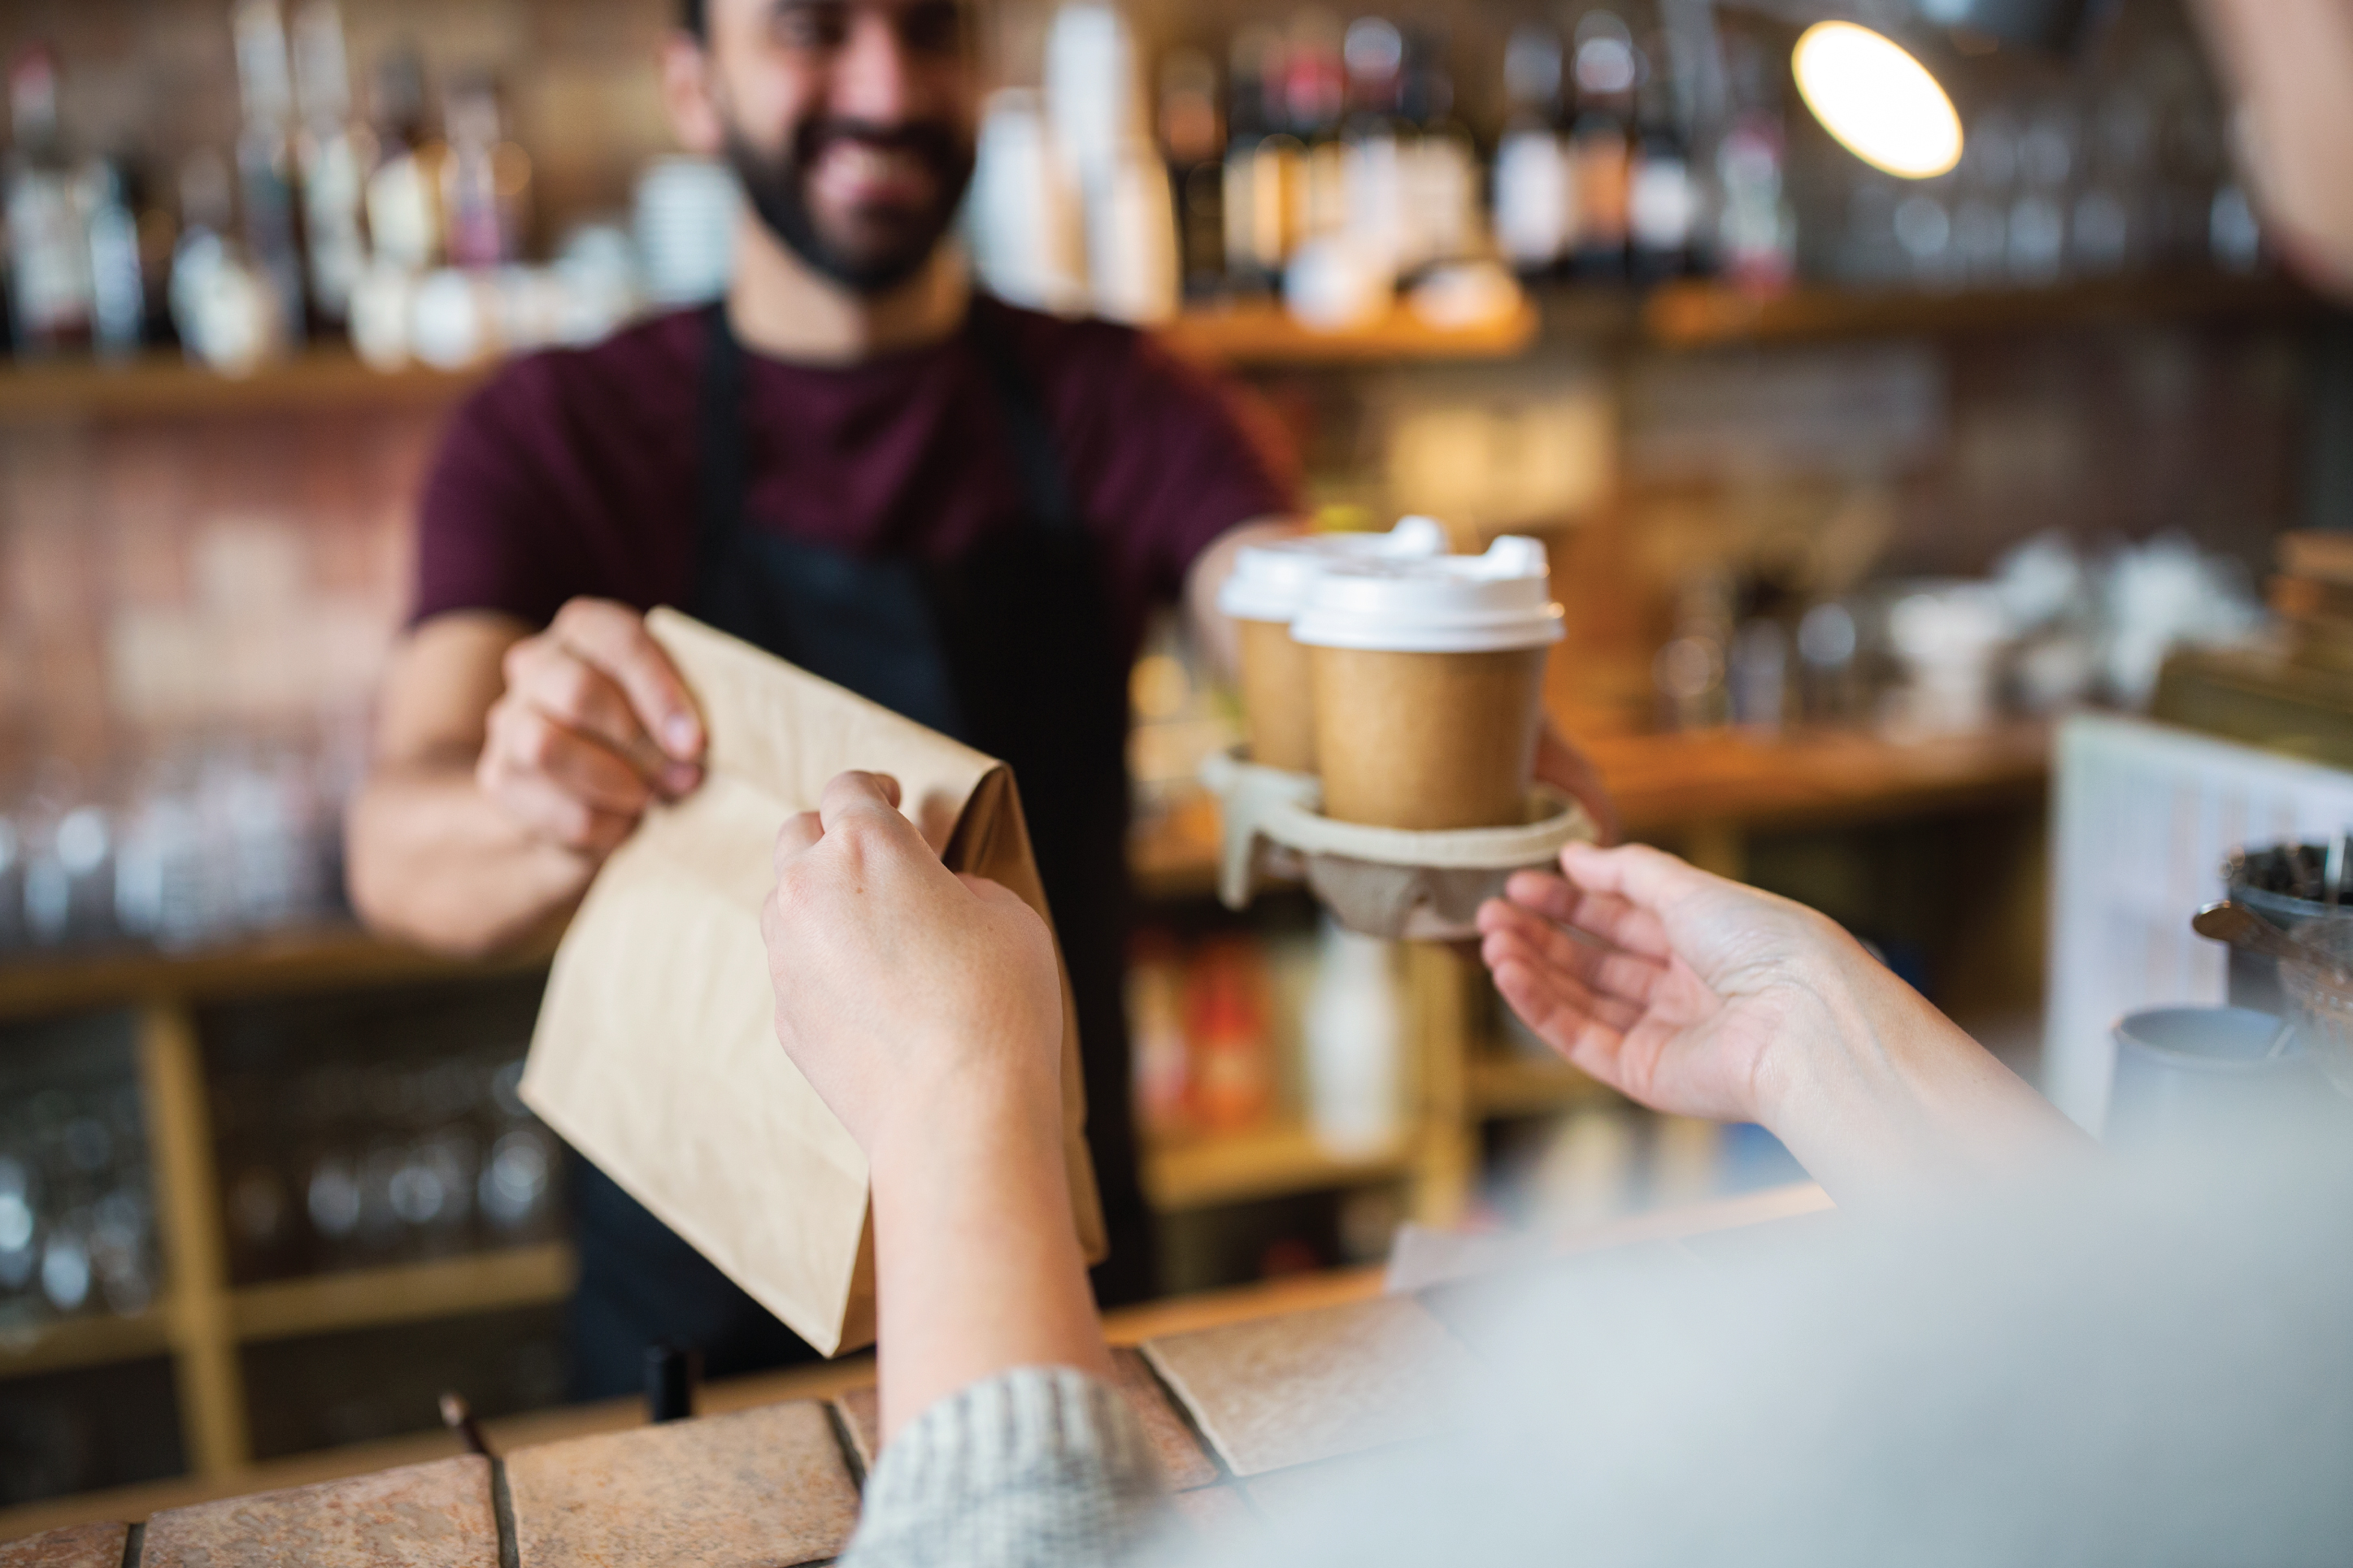 5 Easy Areas to Cut Down Monthly Expenses